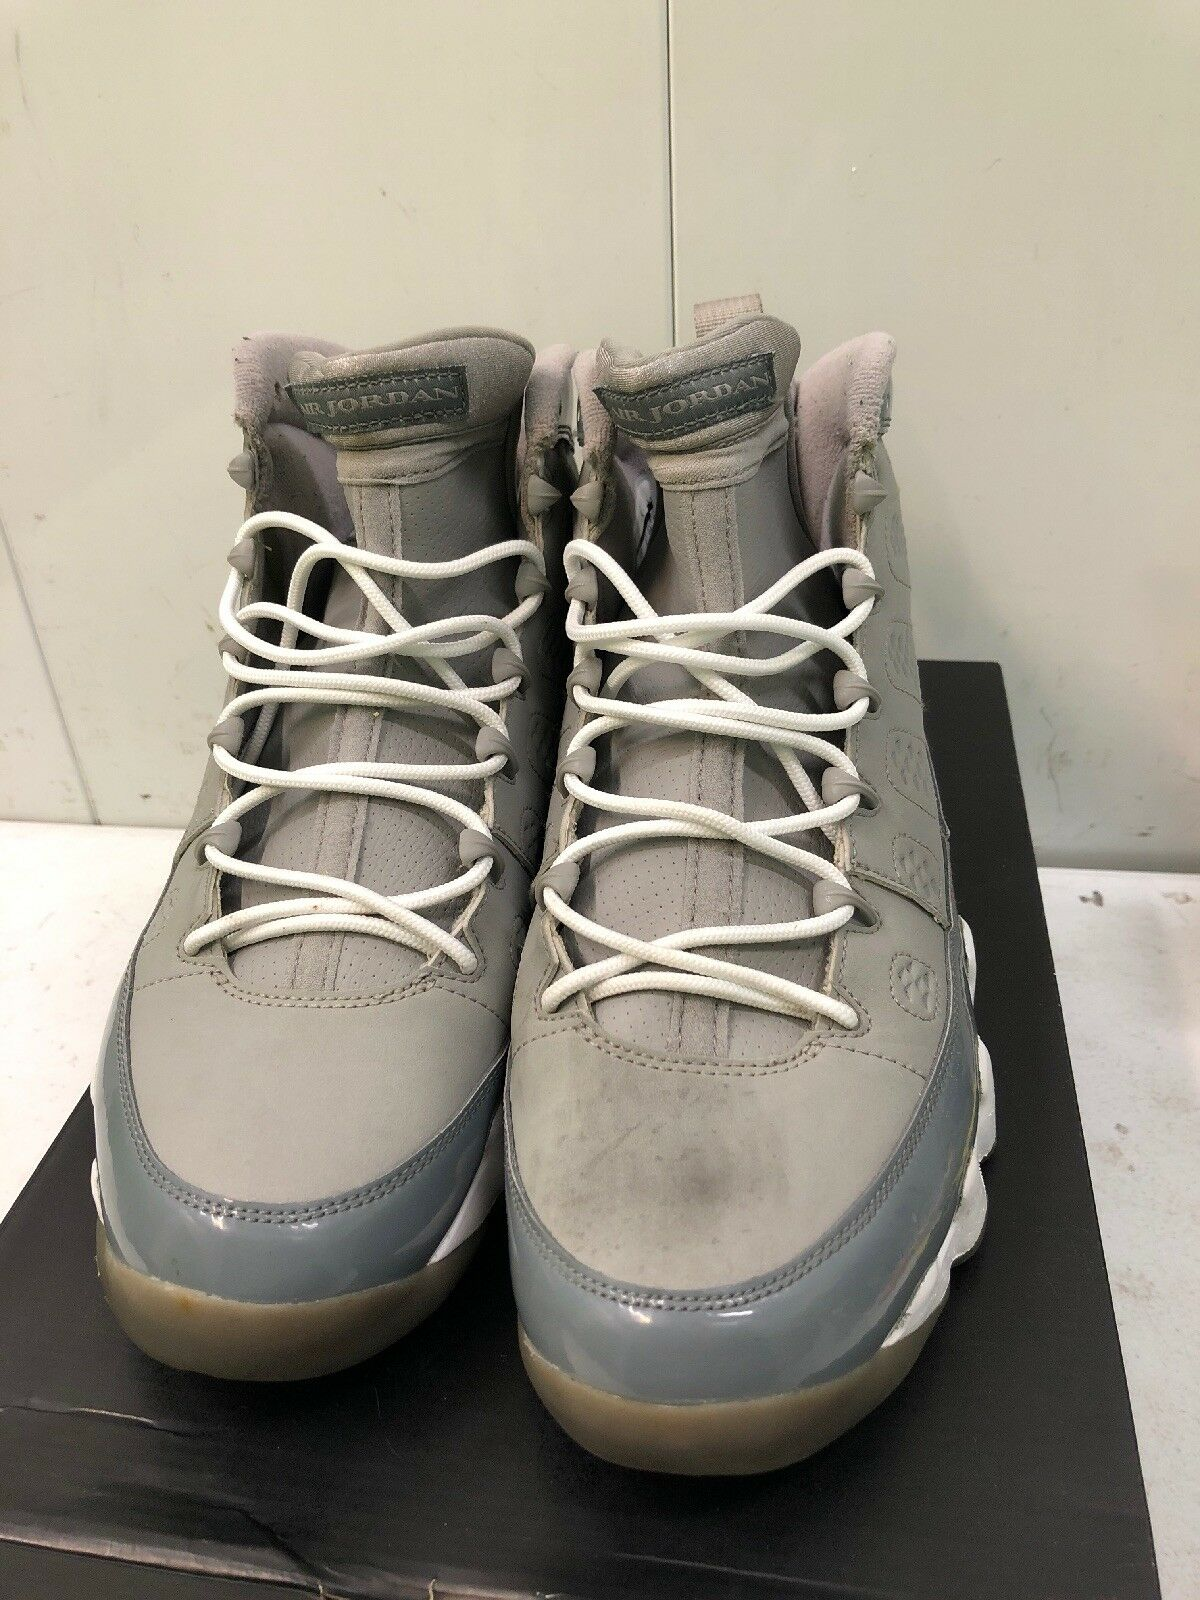 AIR JORDAN 9 RETRO COOL GREY 2012 RELEASE size 10